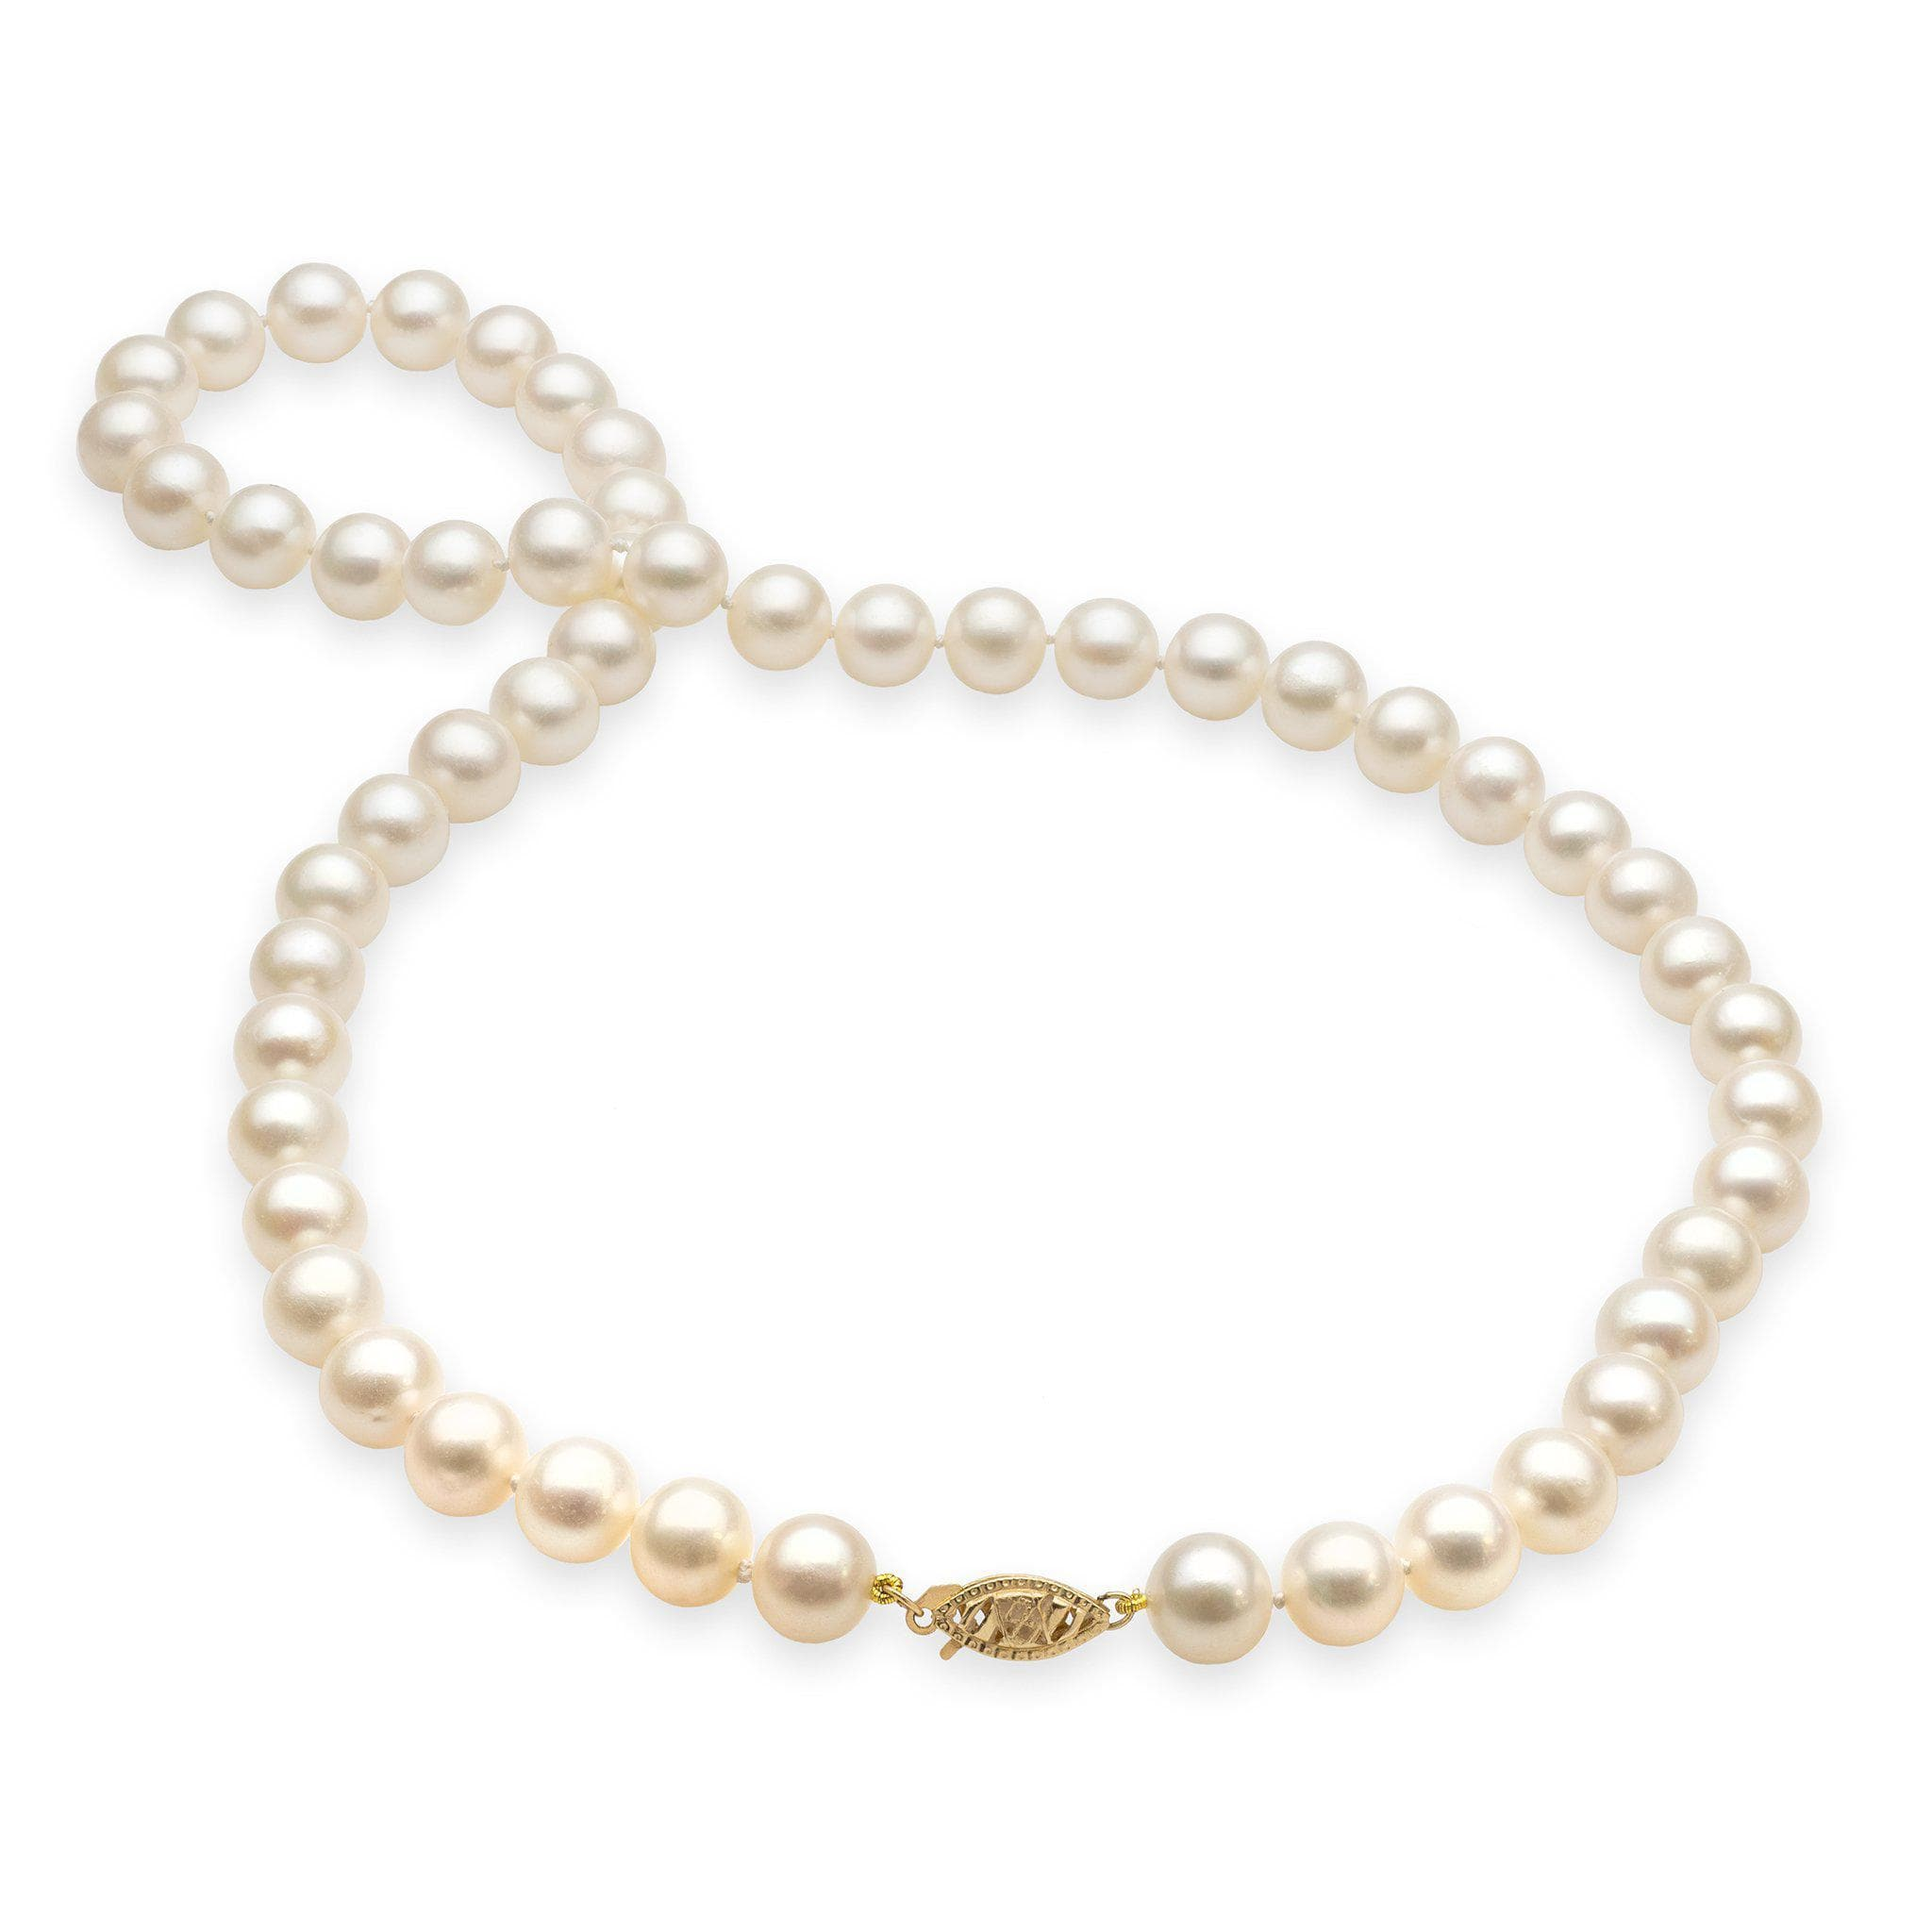 Shop Pearl Jewelry Online Handmade Hawaii Island Pearls